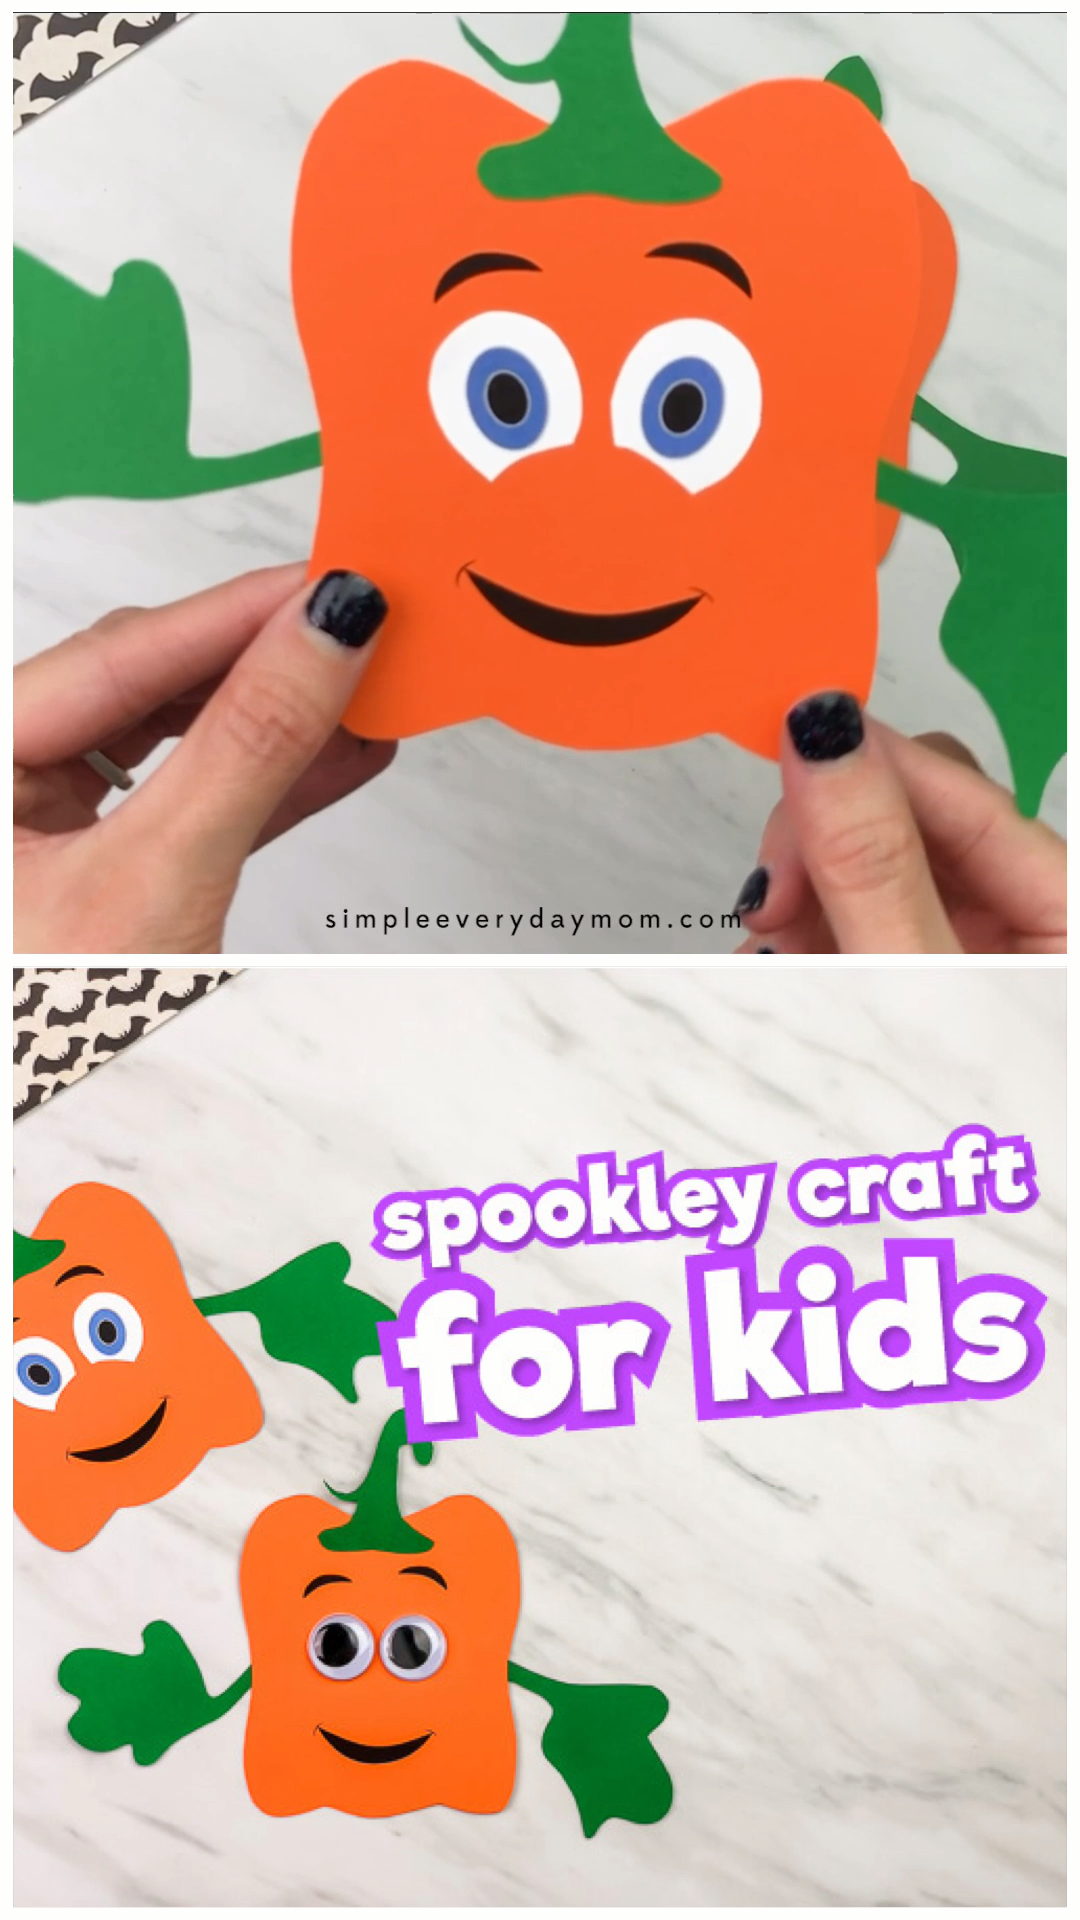 Spookley Craft For Kids